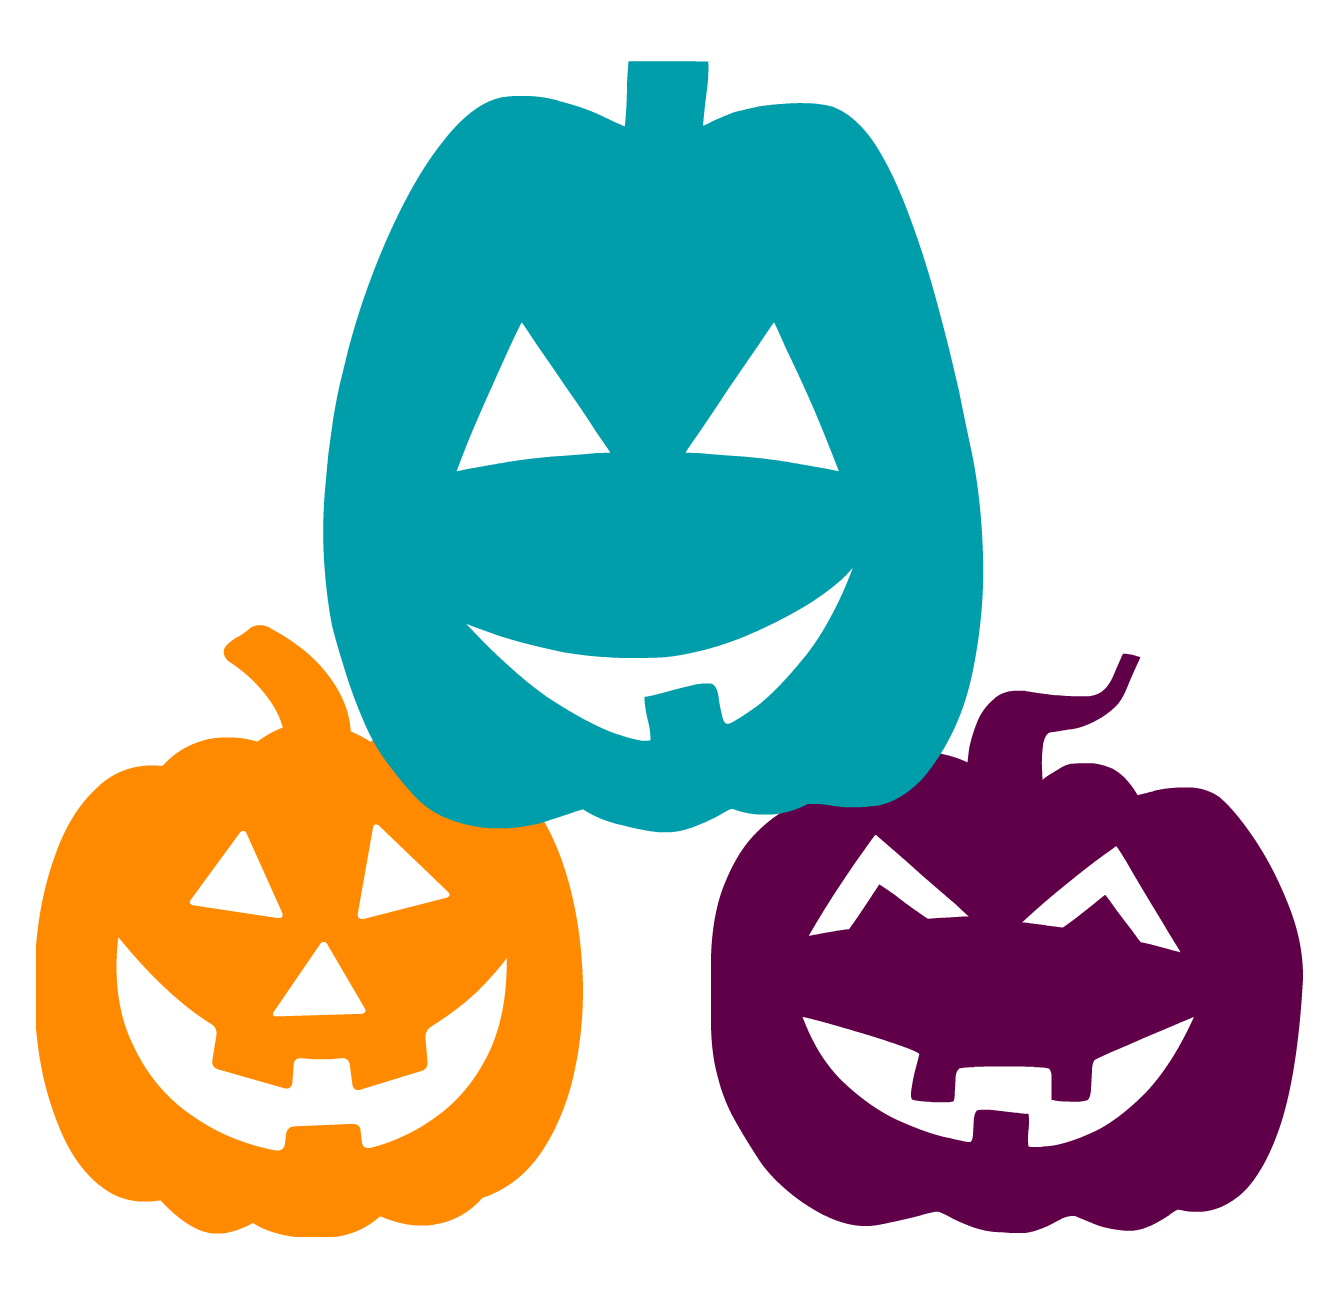 Teal Colored Pumpkins this Halloween and What they Mean